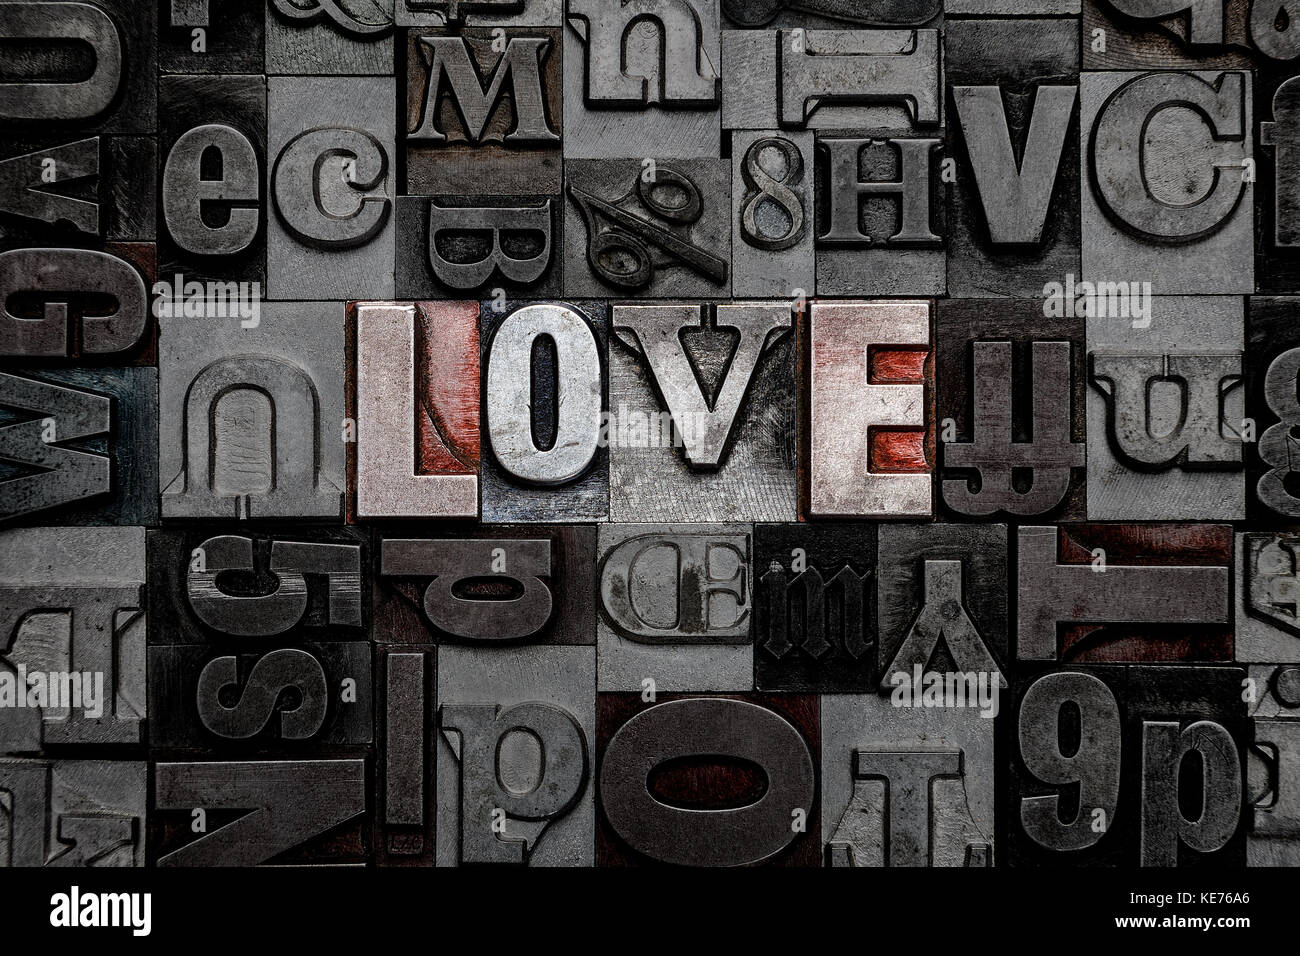 Old Metal Letters Brilliant Old Love Letters Stock Photos & Old Love Letters Stock Images  Alamy 2018